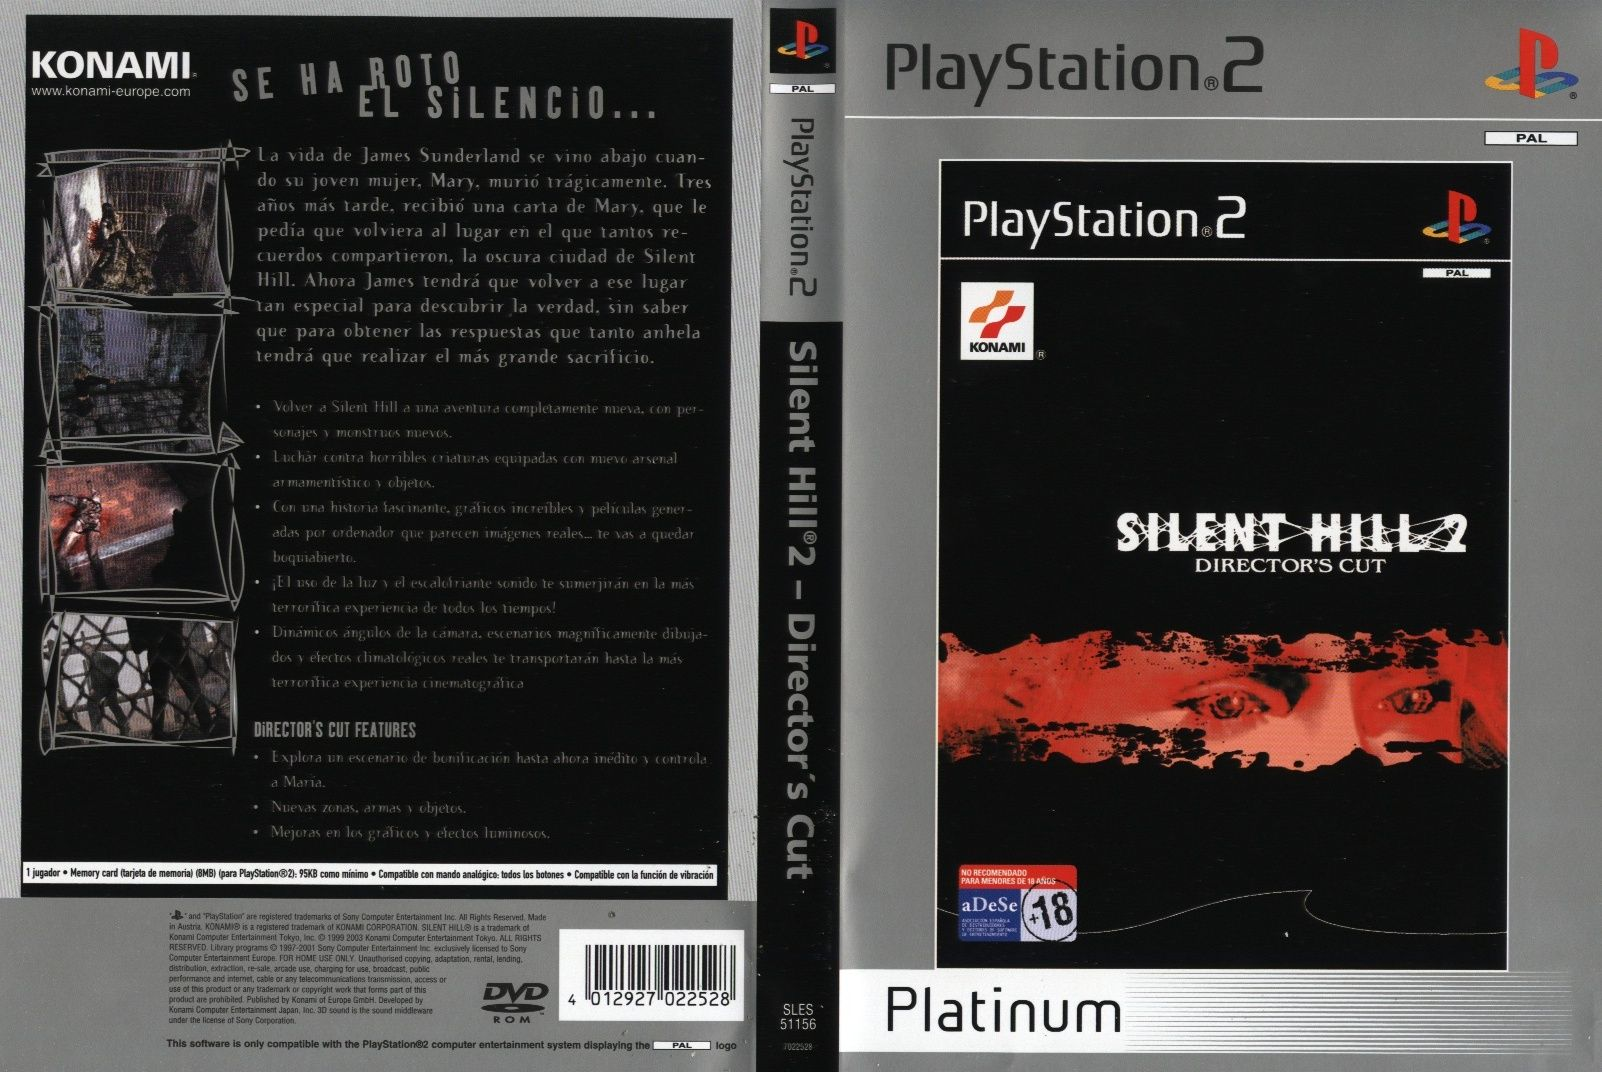 What Are The Graphical Differences Between Silent Hill 2